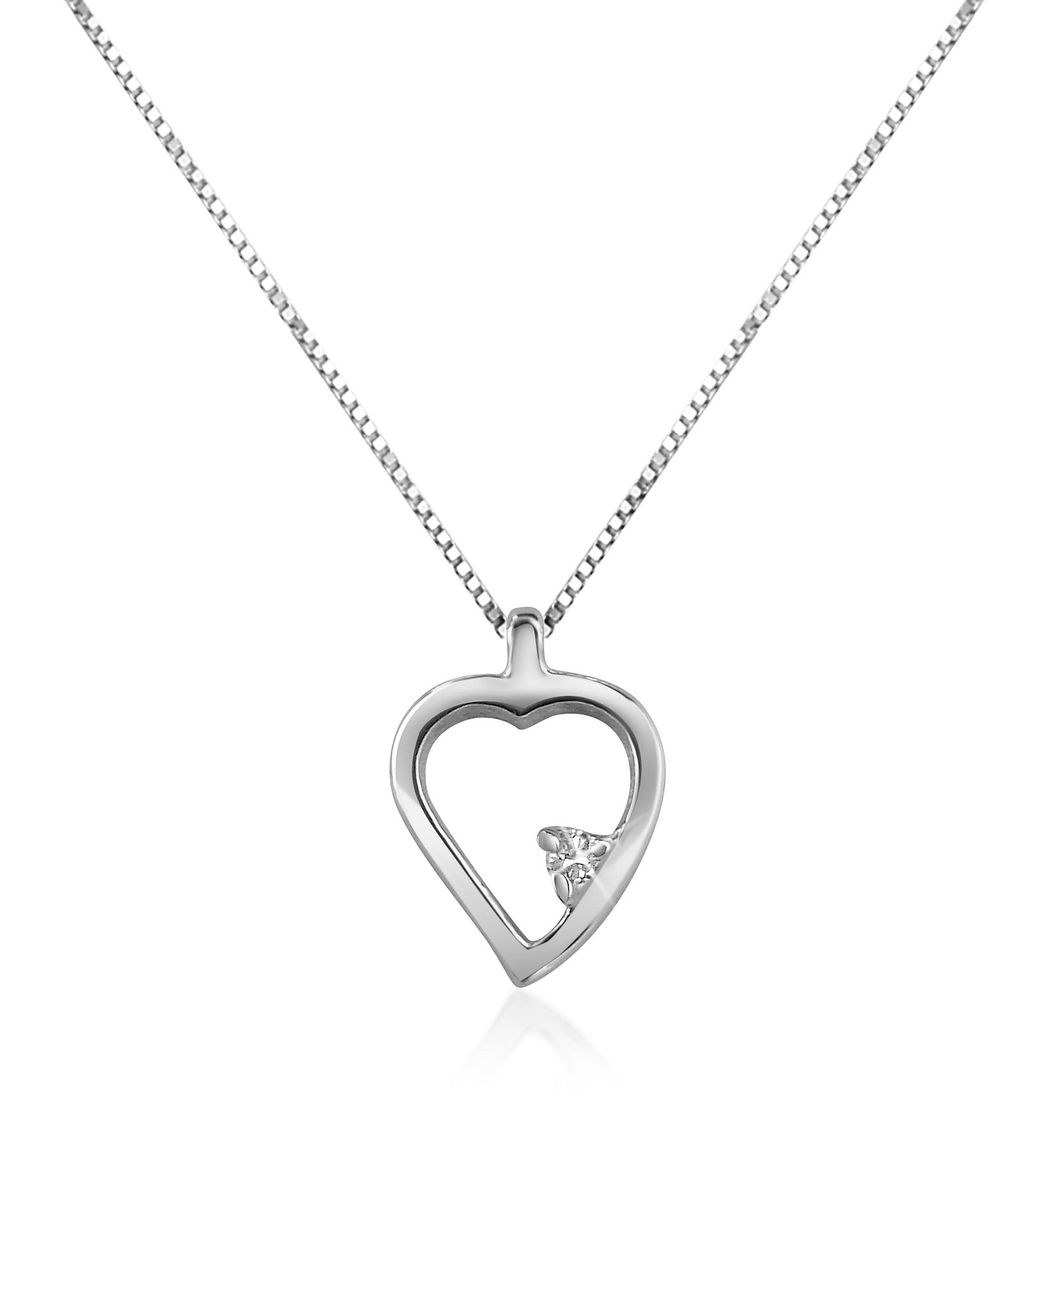 Beverly Clark's Clarity Necklace